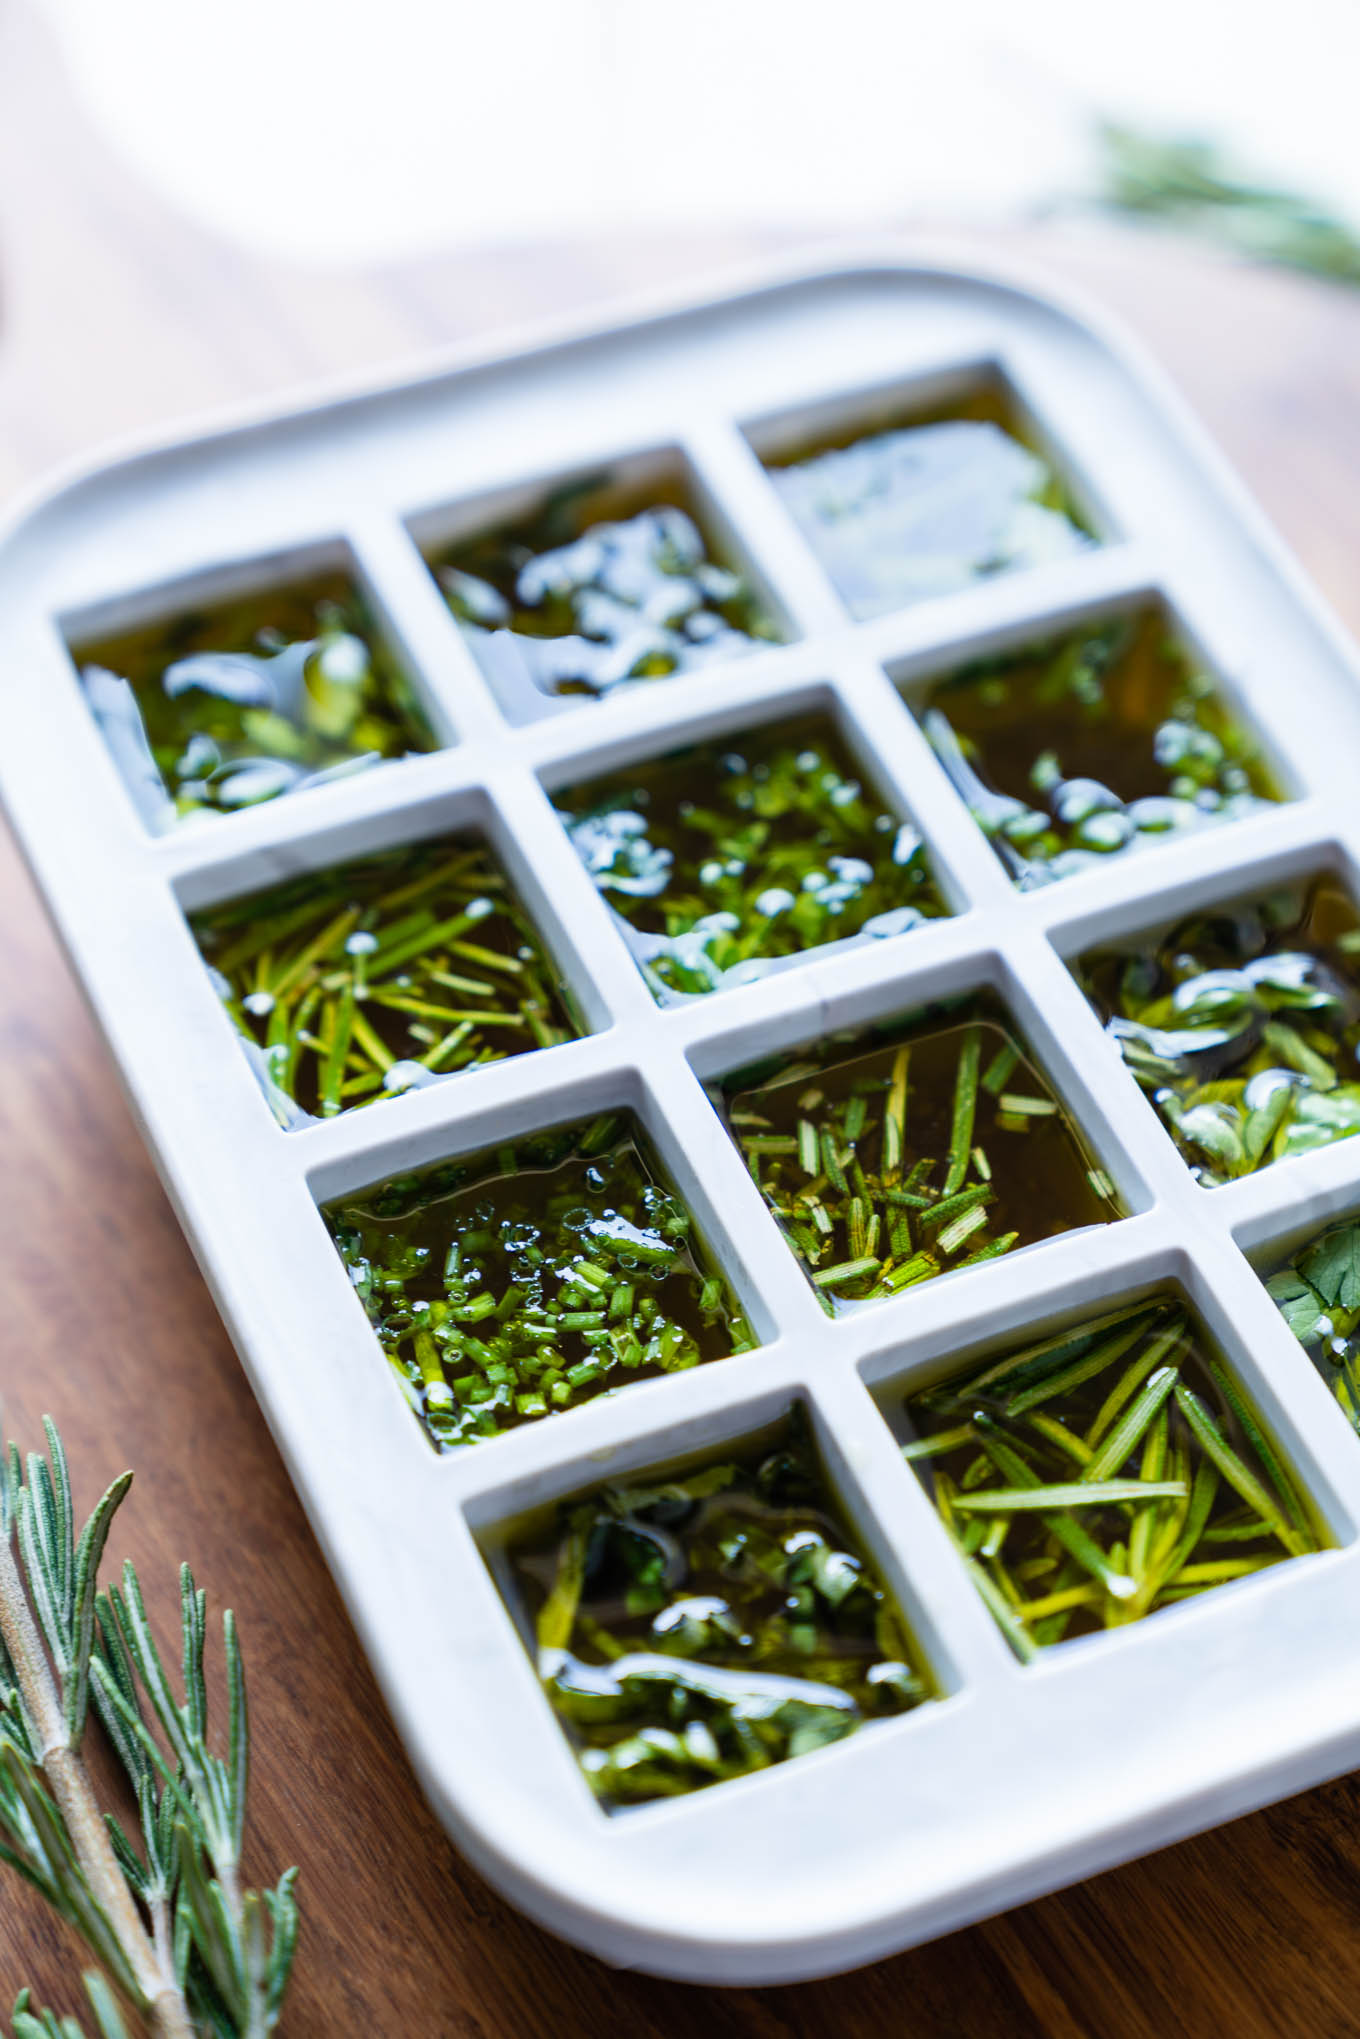 Ice cube mold filled with herbs and olive oil